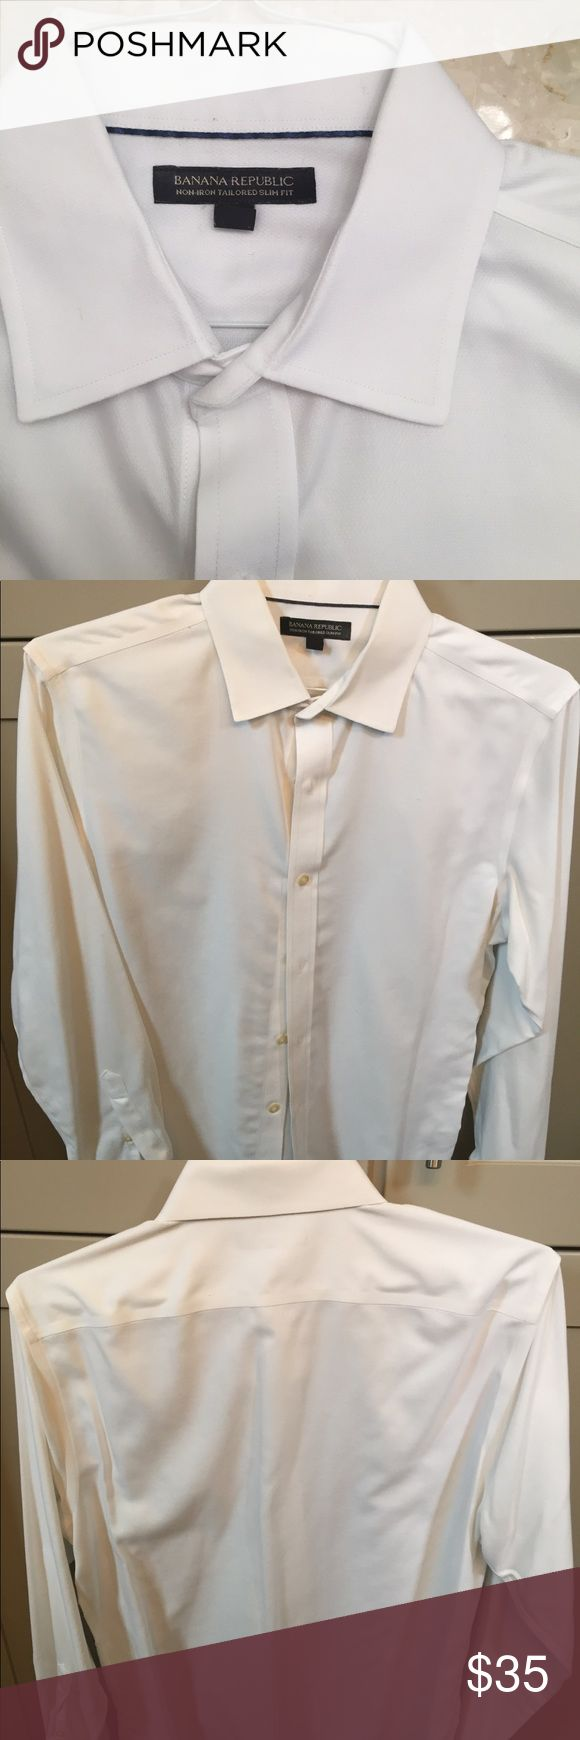 Banana Republic Slim Fit Dress Shirt Banana Republic Non-Iron Tailored Slim Fit Shirt Men's Dress Shirt.  Like new, barely worn. Size Medium Banana Republic Shirts Dress Shirts